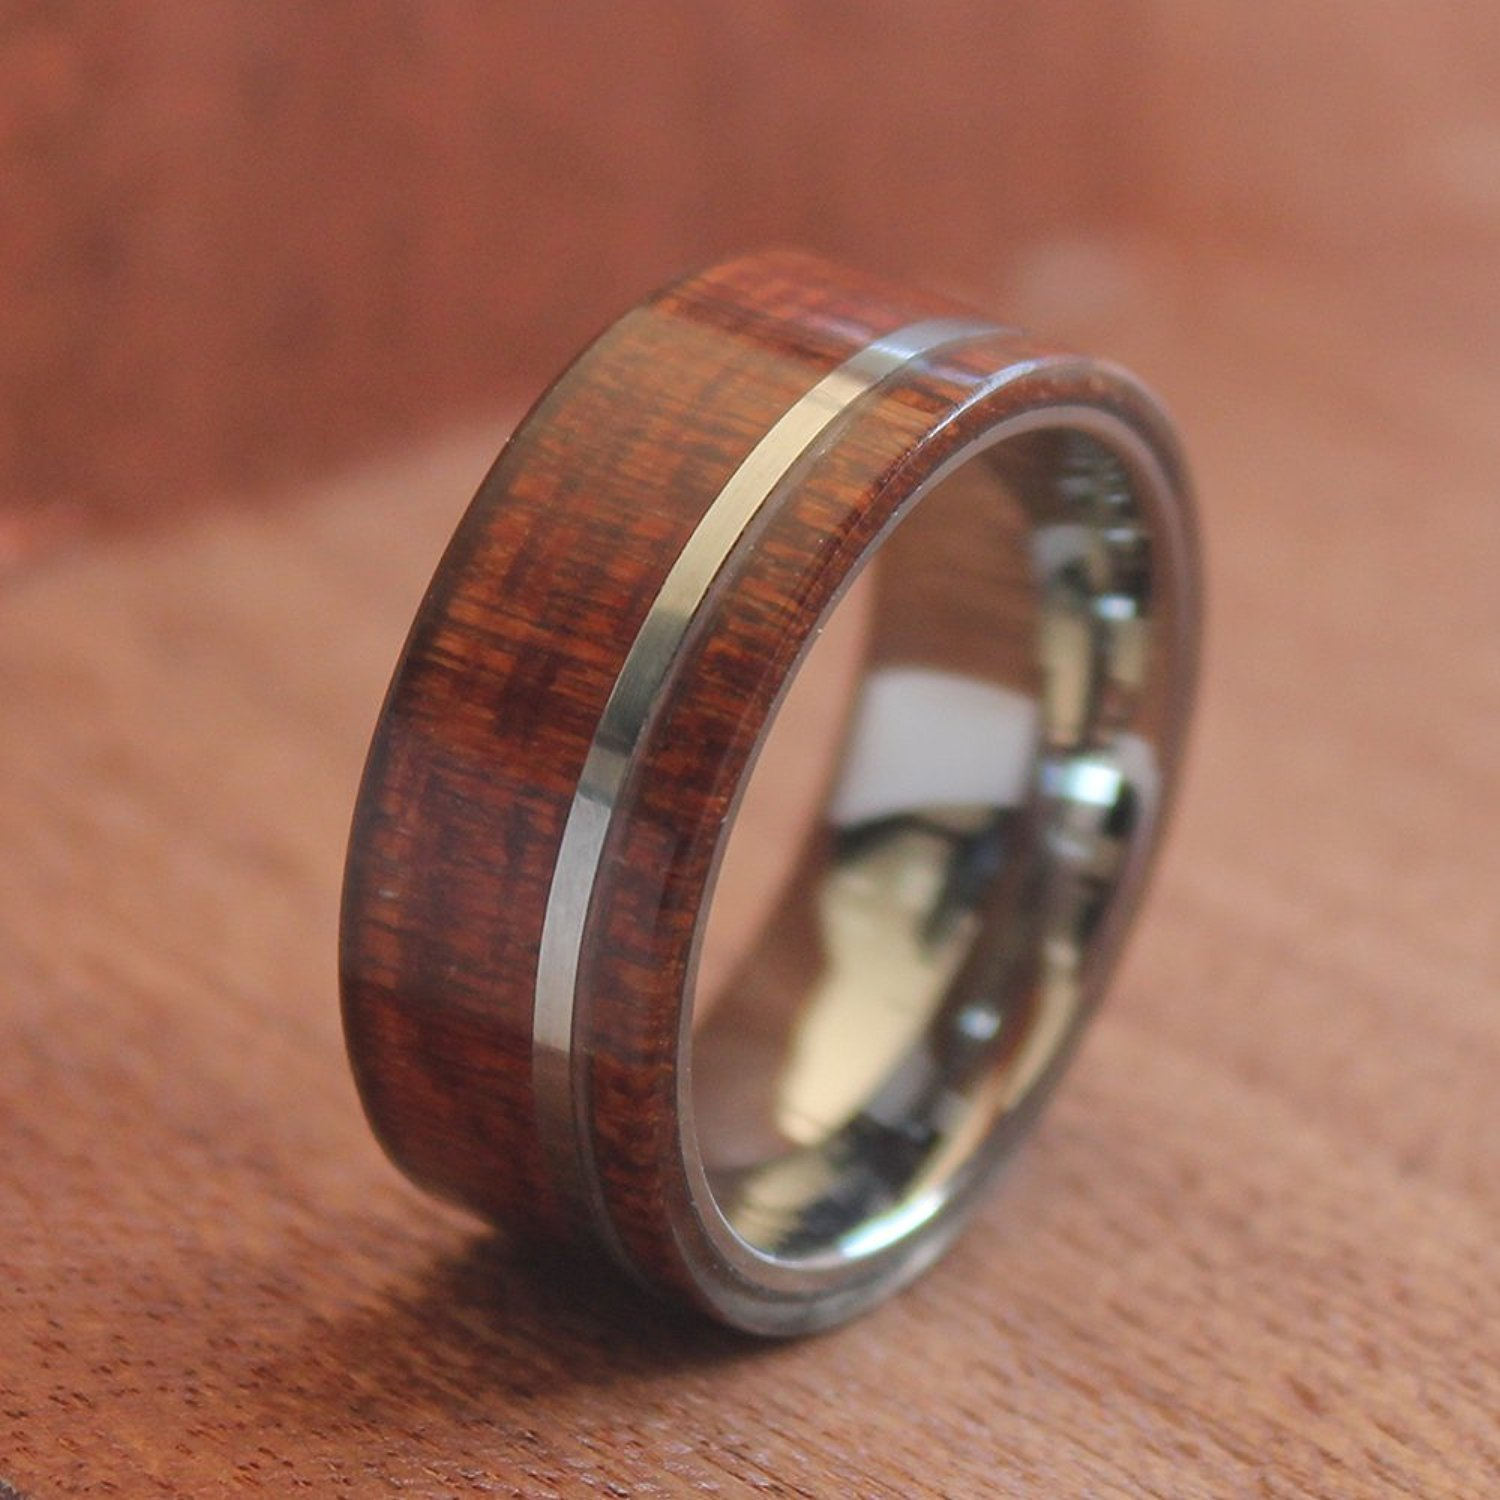 Will Queen Hawaii Koa Wood Inlay Men s Tungsten Wedding Bands with